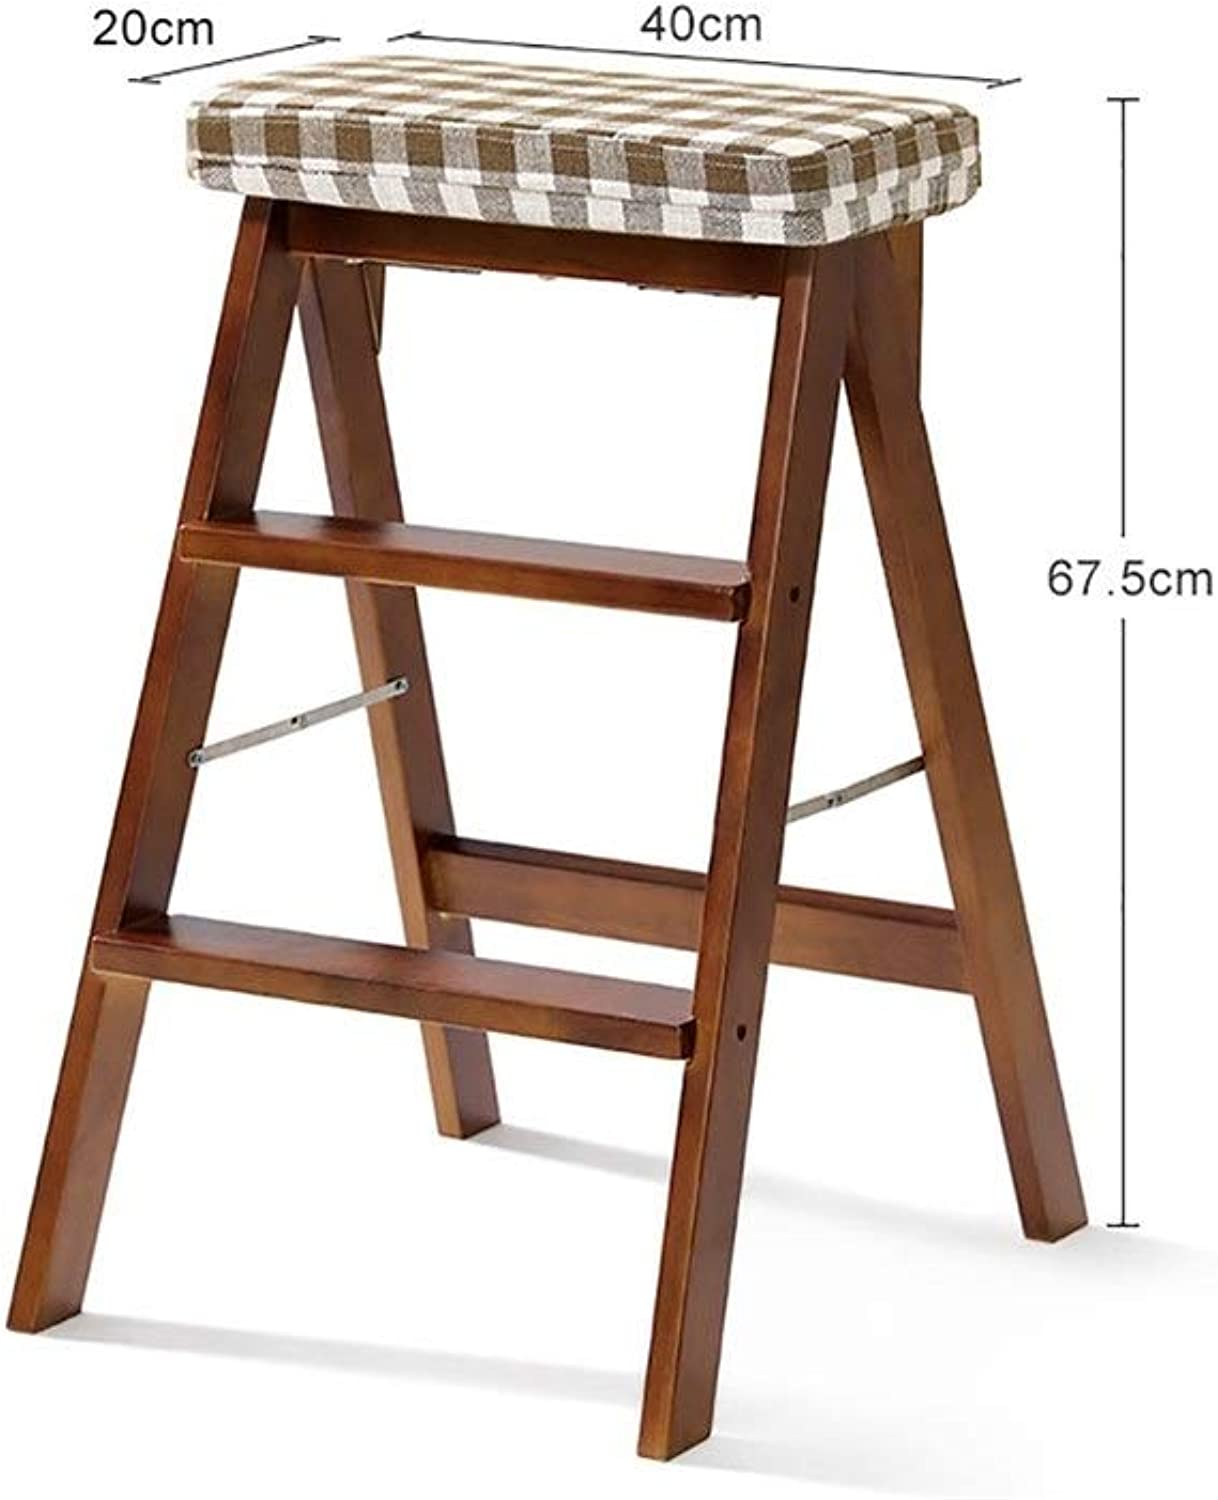 Staircase Solid Wood Folding Stool, Home Ladder Stool, Portable Multifunctional Stool, Creative Kitchen Bench. (color   D)